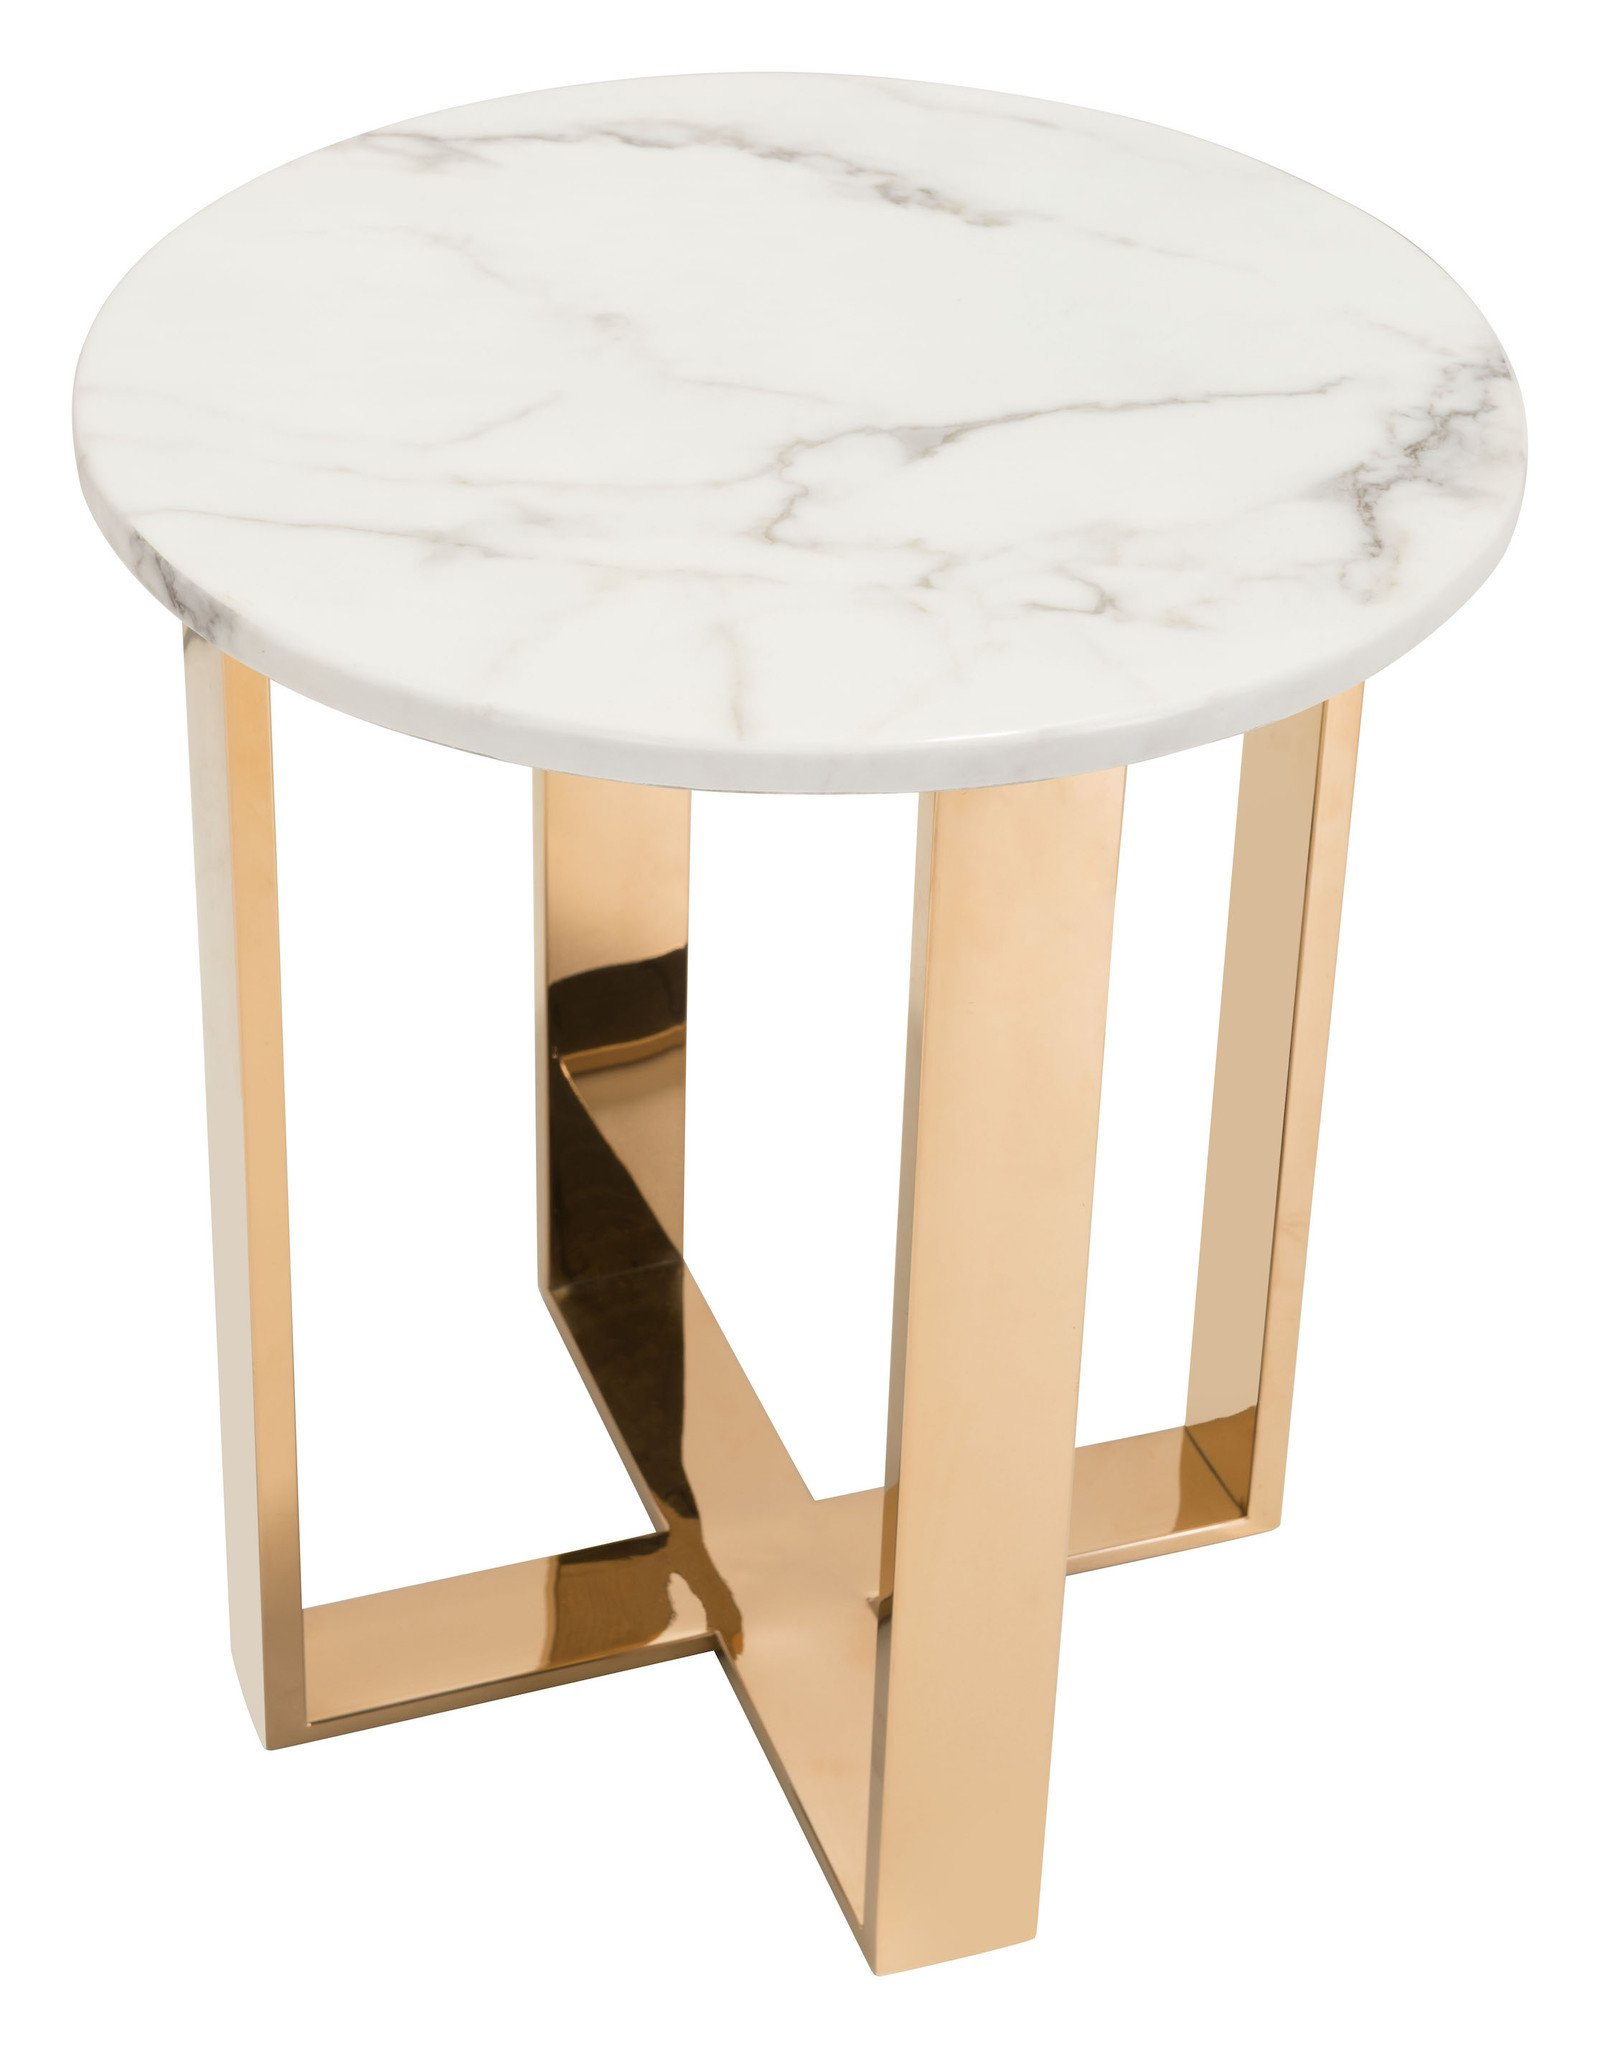 modern contemporary rustic vintage side end tables alan decor atlas table with faux marble top gold stainless steel base accent wood coffee nautical pendant lights tan plastic